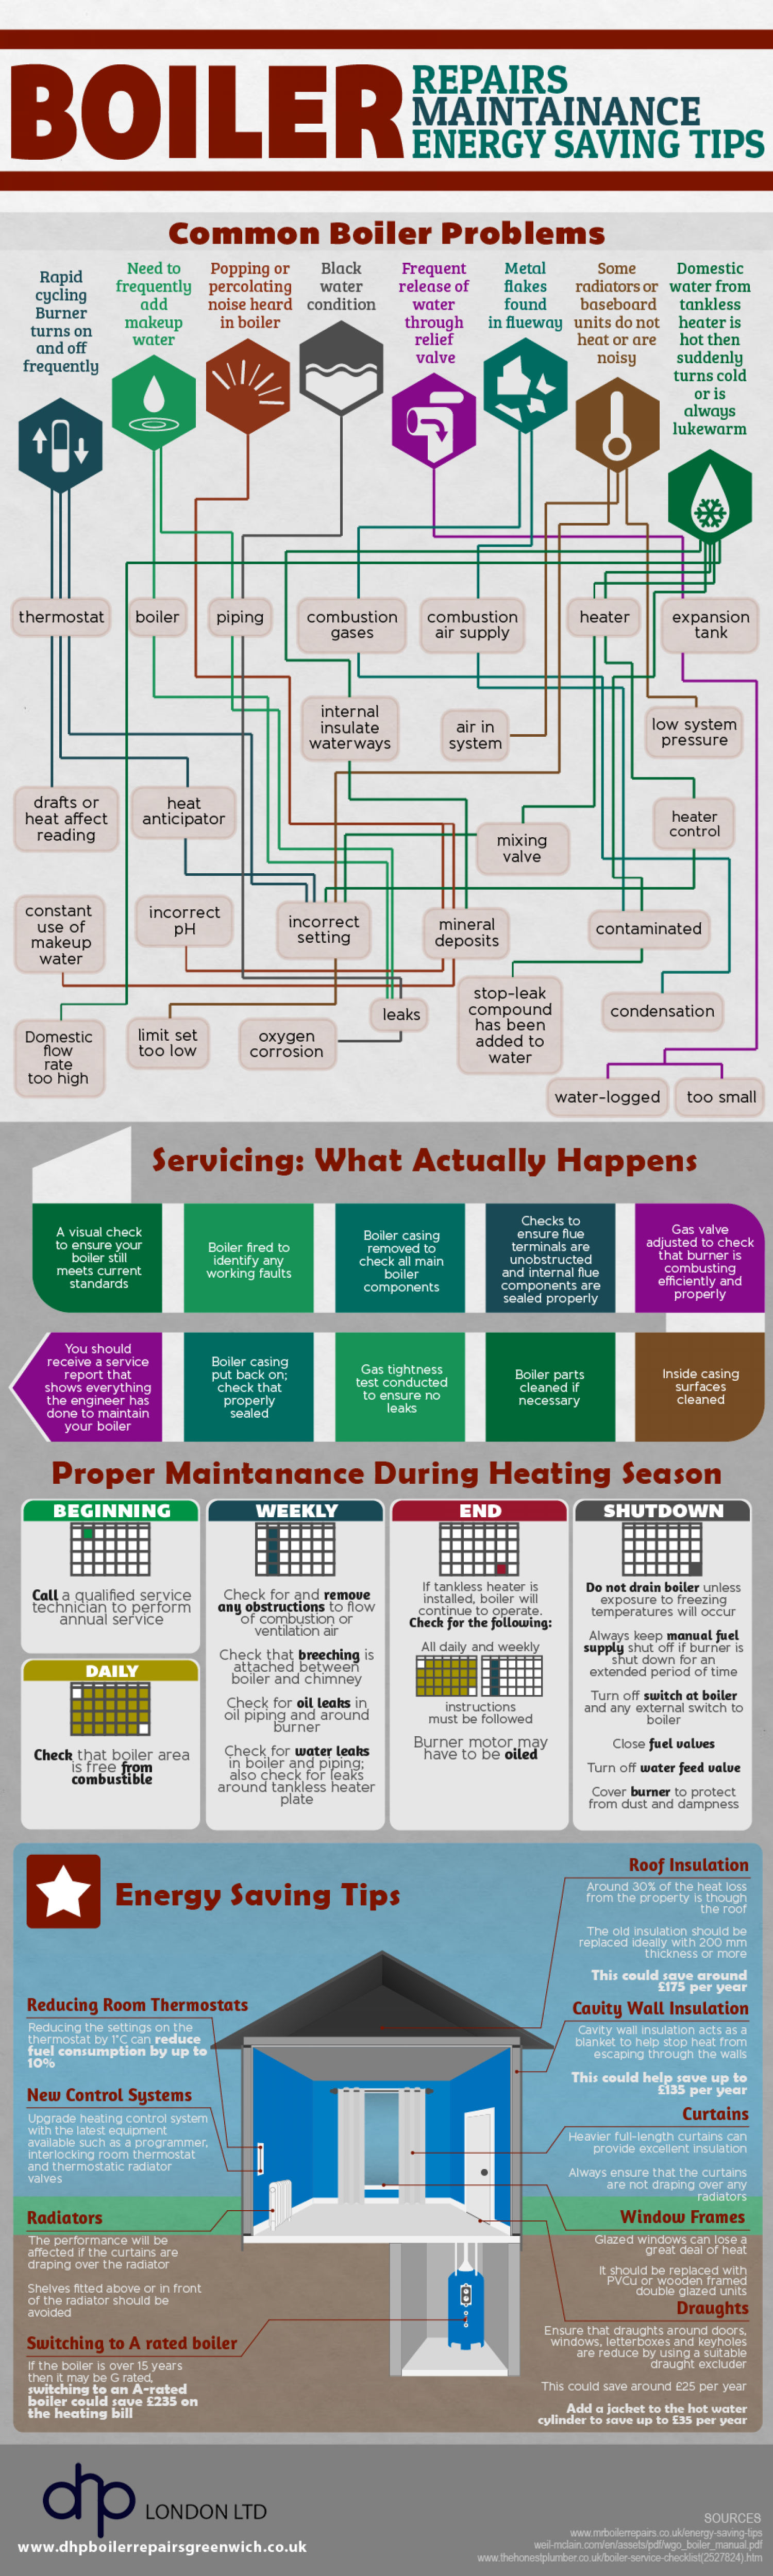 Boiler Repairs, Maintenance, and Energy Saving Tips Infographic